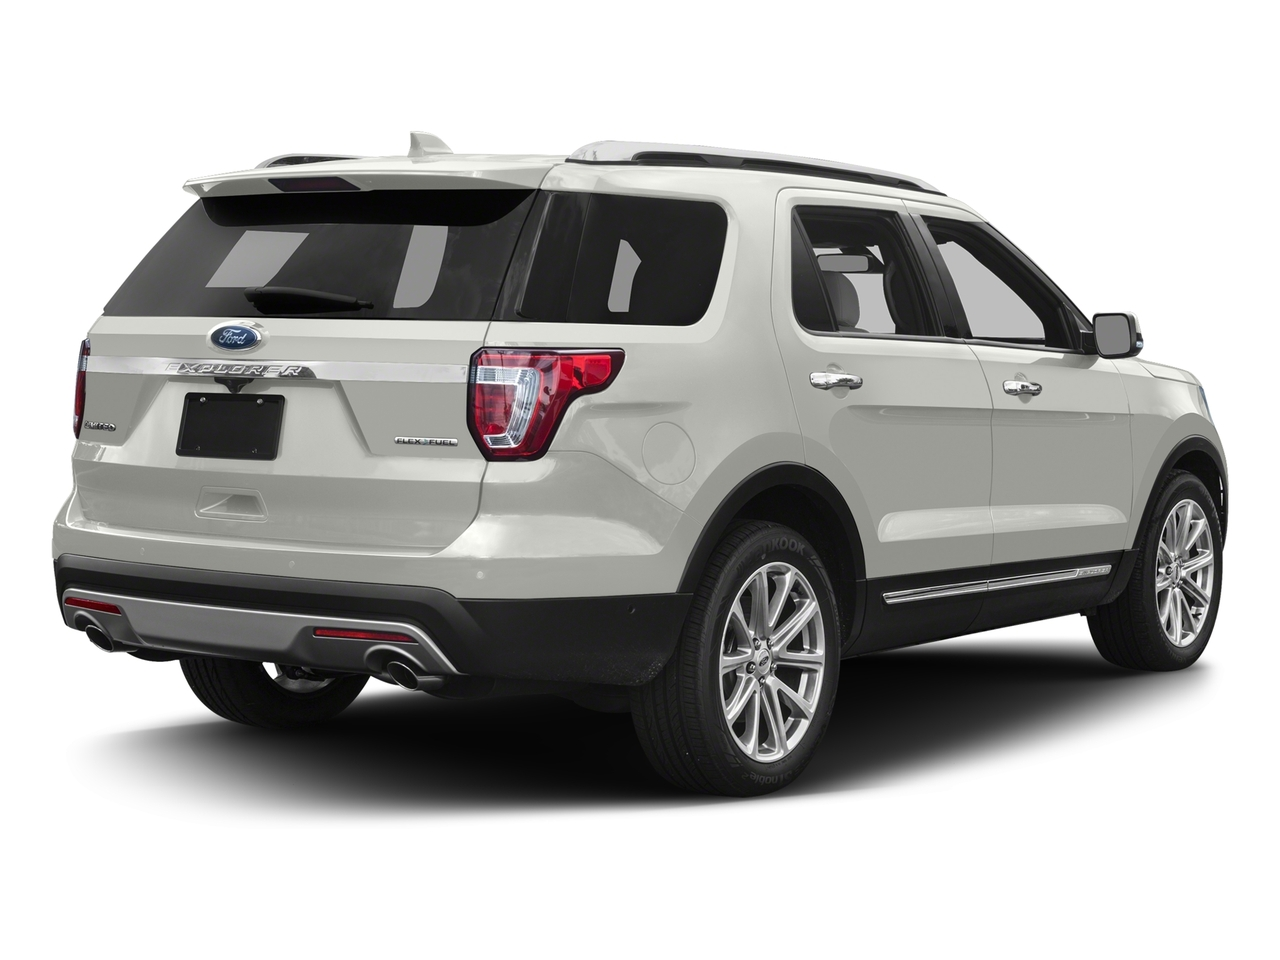 2017 Ford Explorer LIMITED SUV Slide